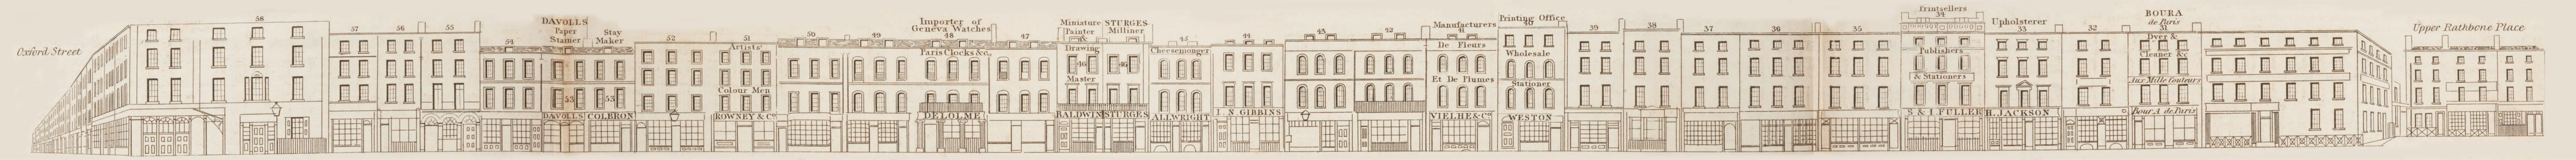 map - Tallis's London street views : No. 64. Rathbone Place (west)